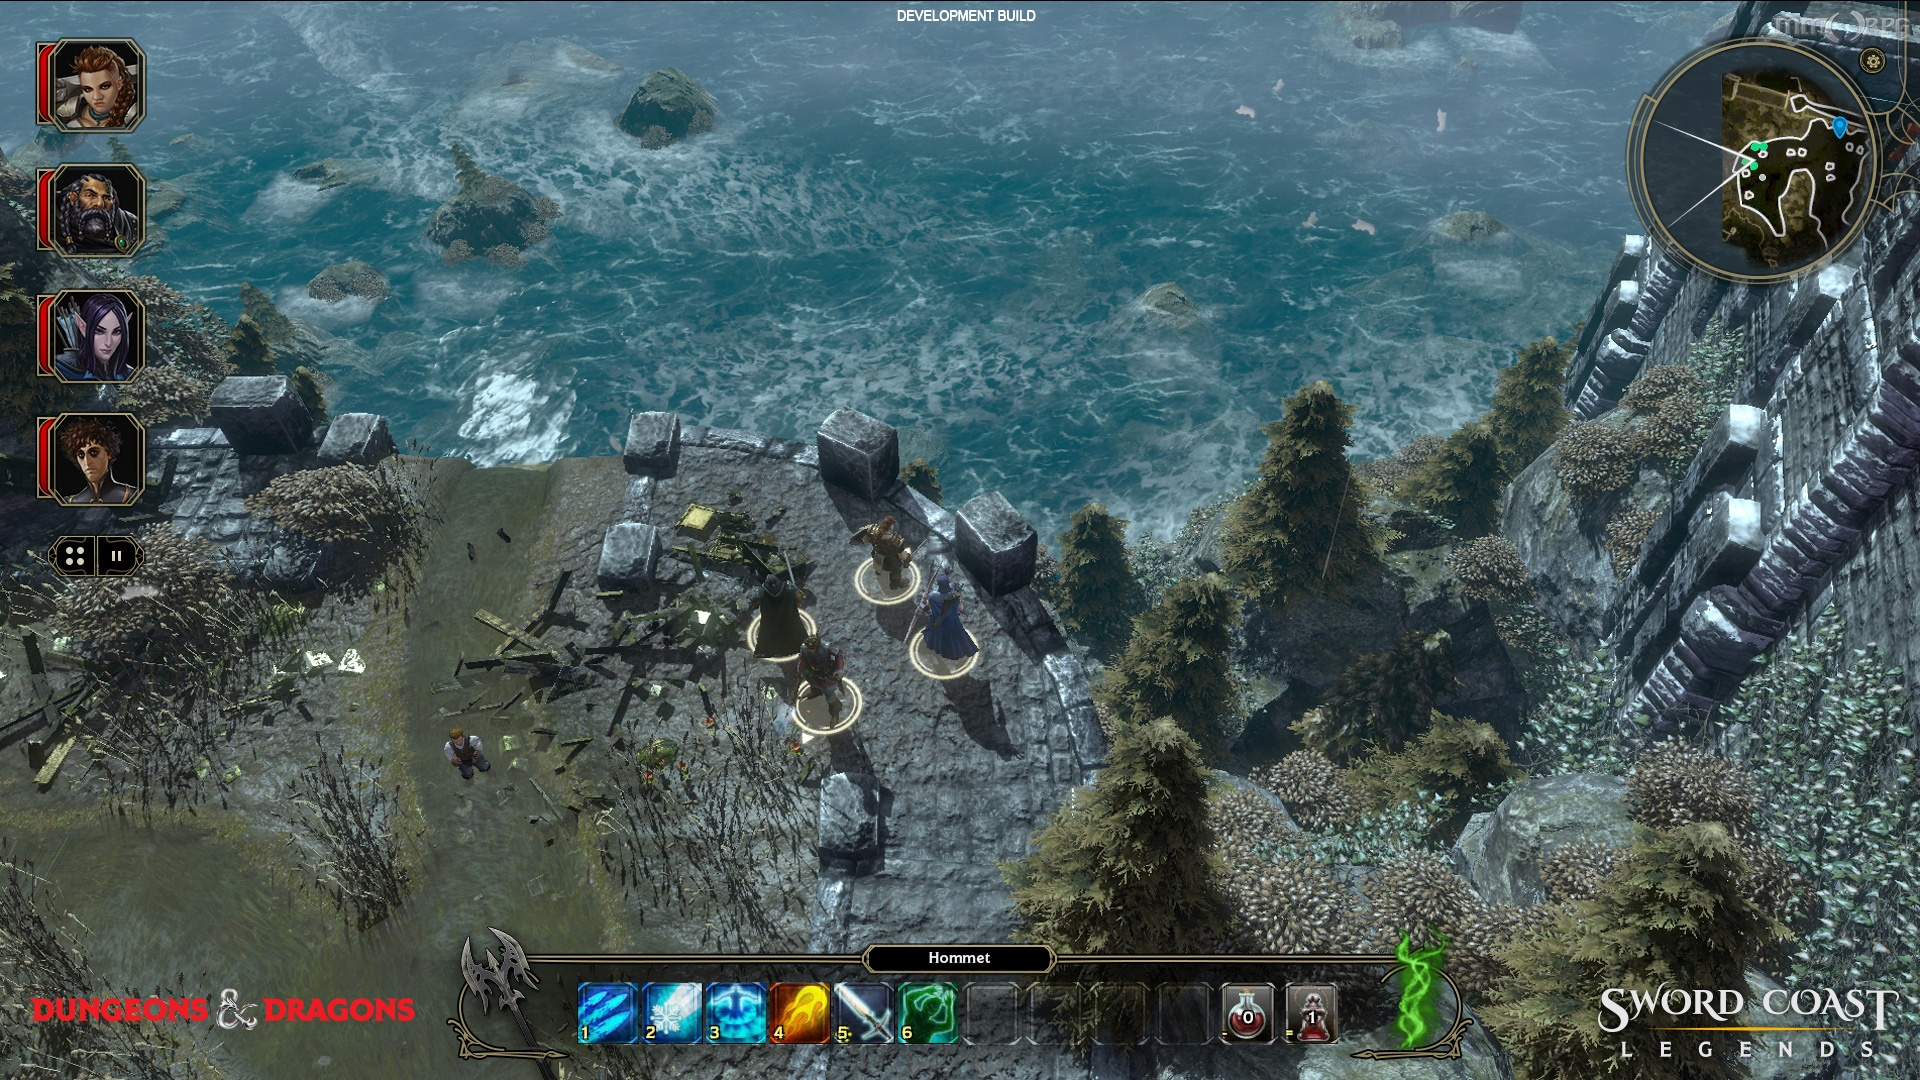 Sword Coast Legends is a party-based RPG set in the D&D Forgotten Realms universe. With a solo campaign and special DM mode, players can choose to play through or run their own games.